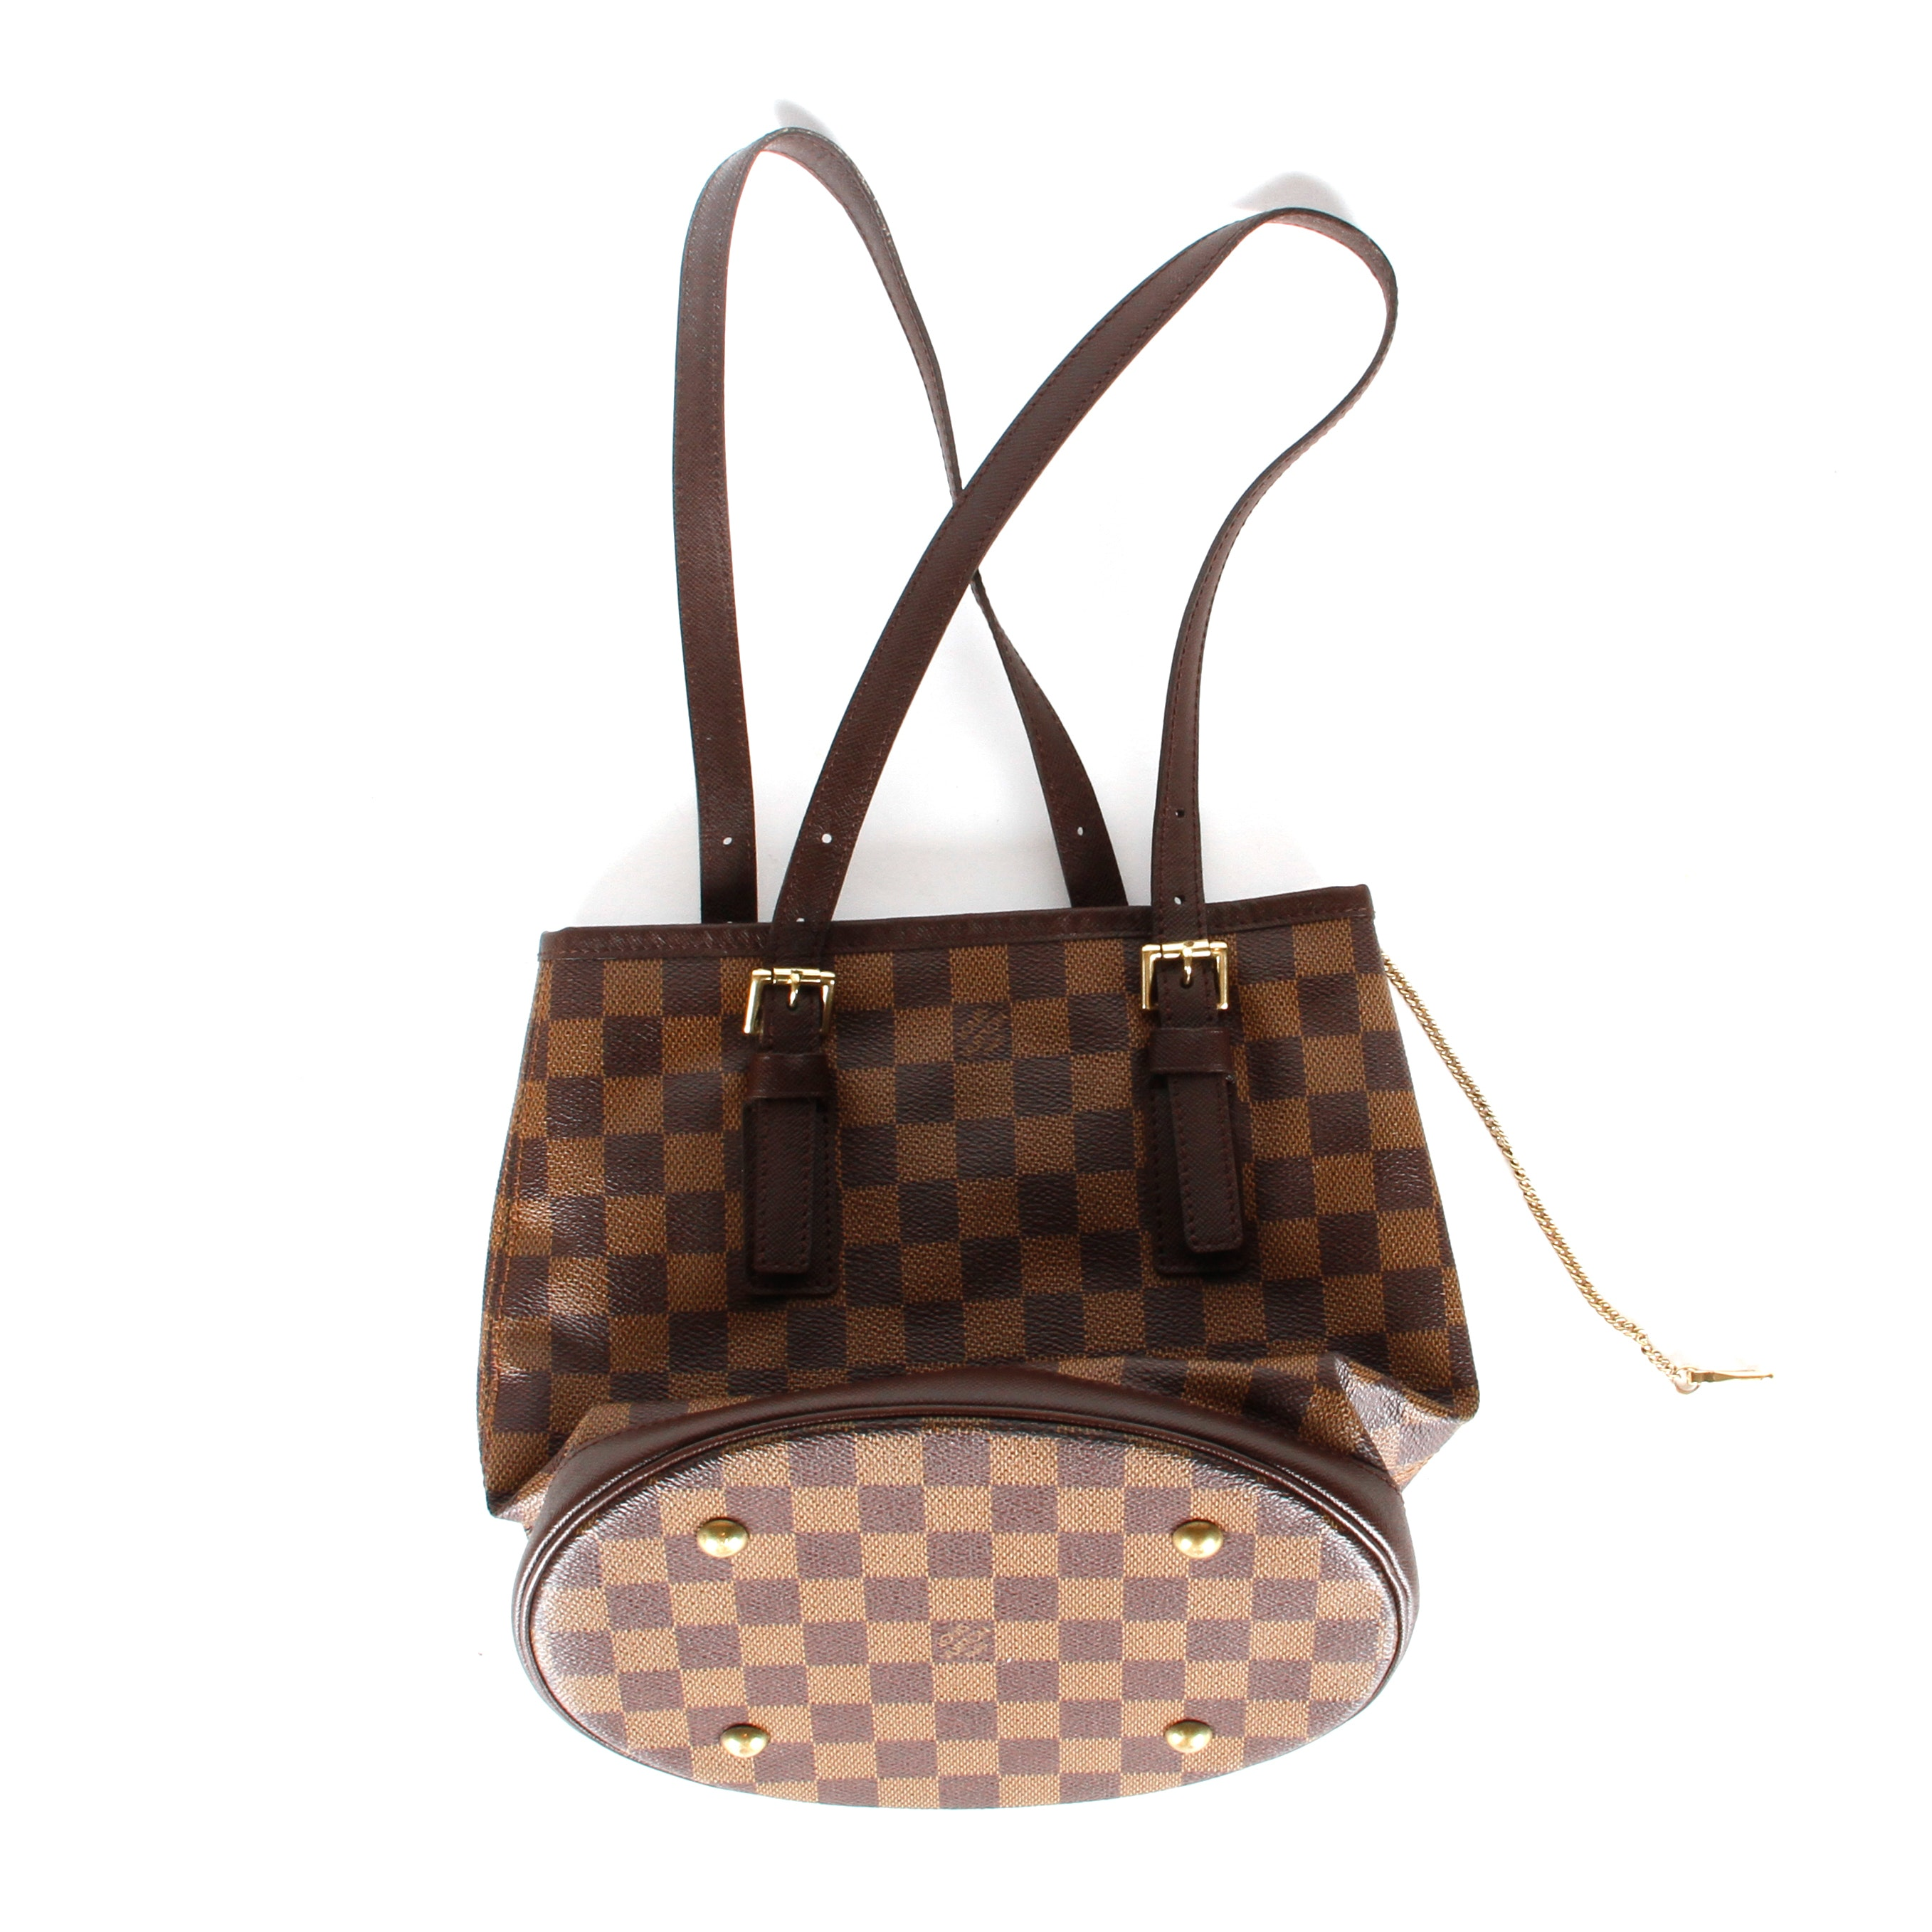 Louis Vuitton Louis Vuitton Damier Ebene Canvas Bucket Bag